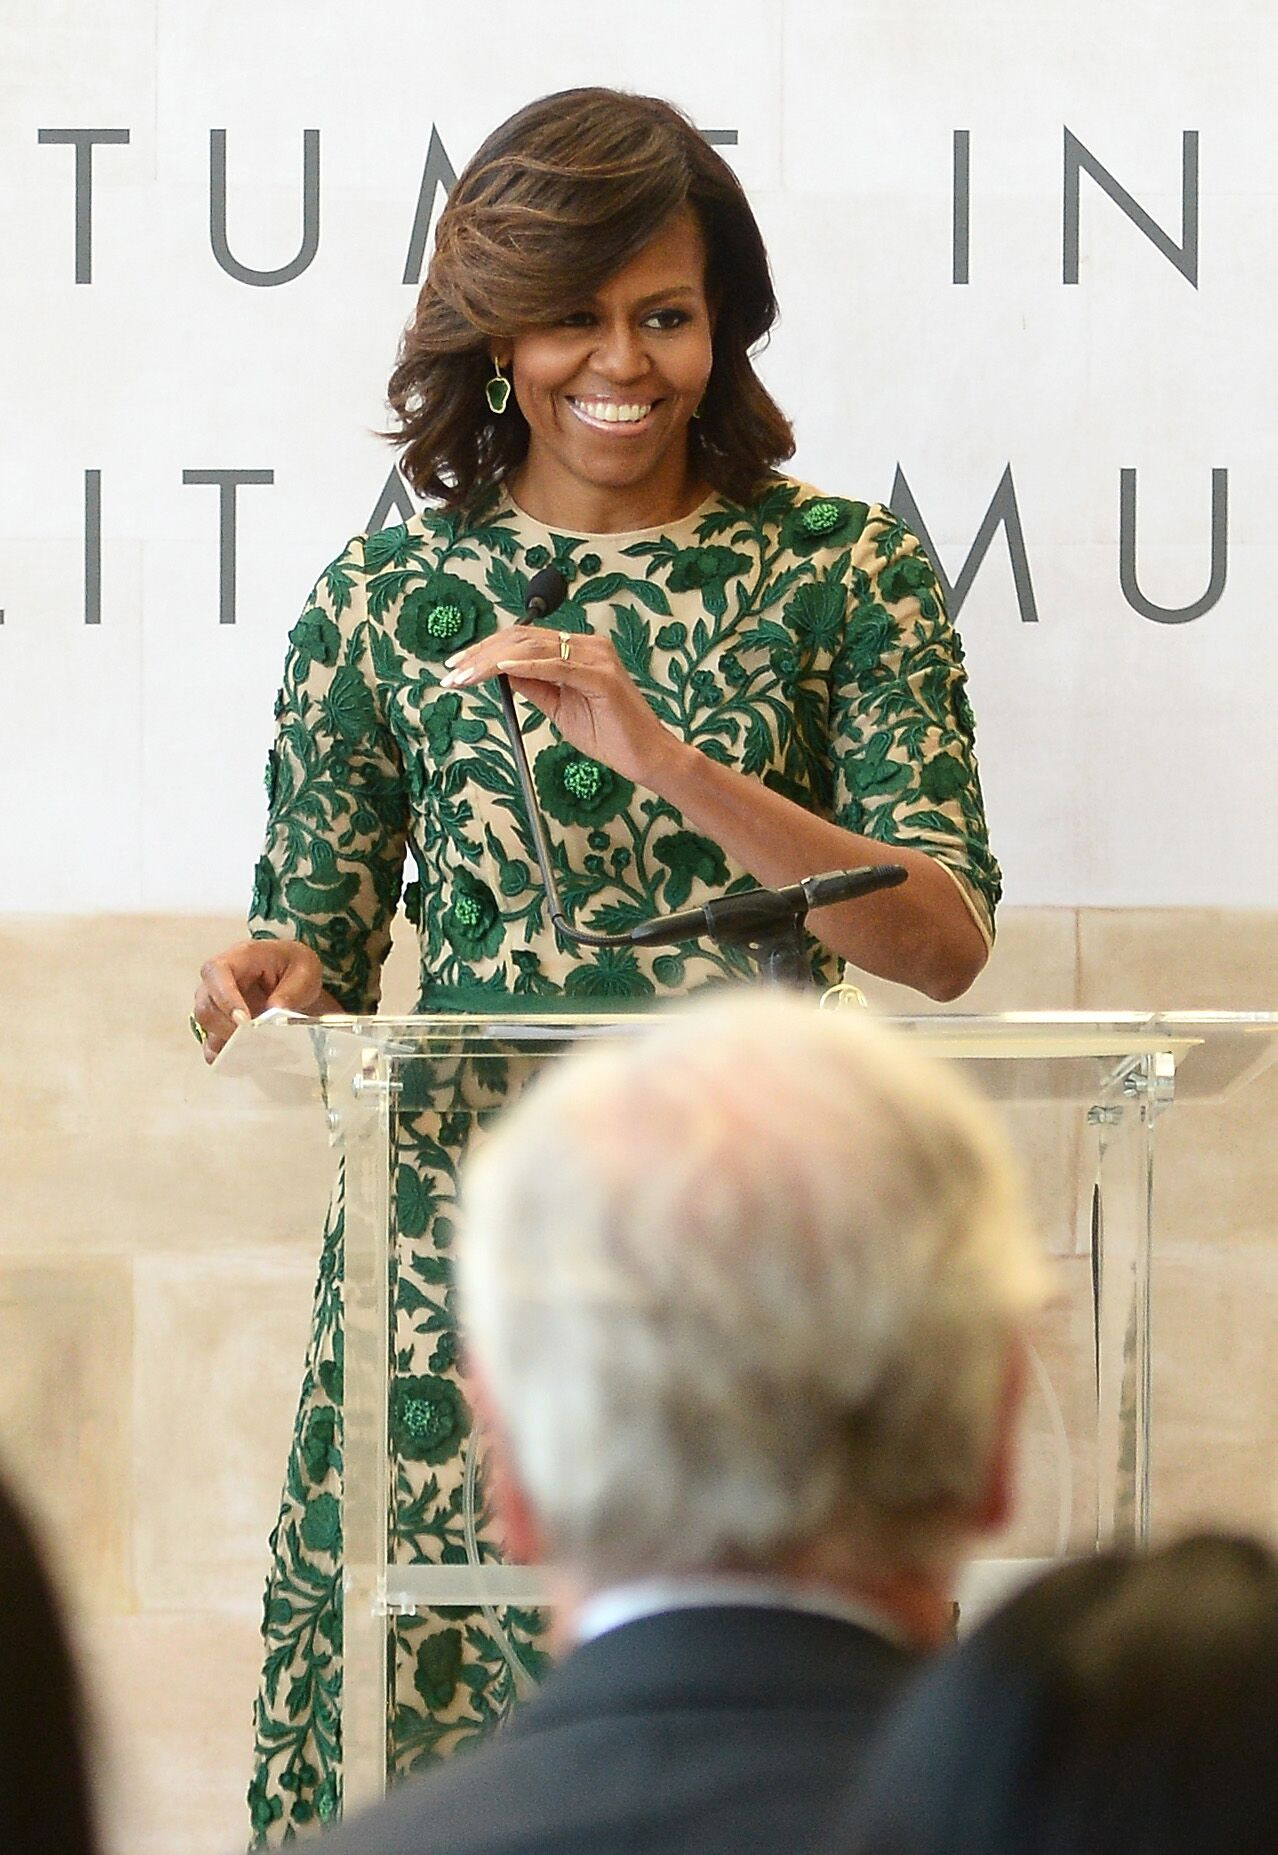 Former First Lady of the United States Michelle Obama speaks onstage at the Anna Wintour Costume Center Grand Opening at the Metropolitan Museum of Art on May 5, 2014. | Photo: Getty Images